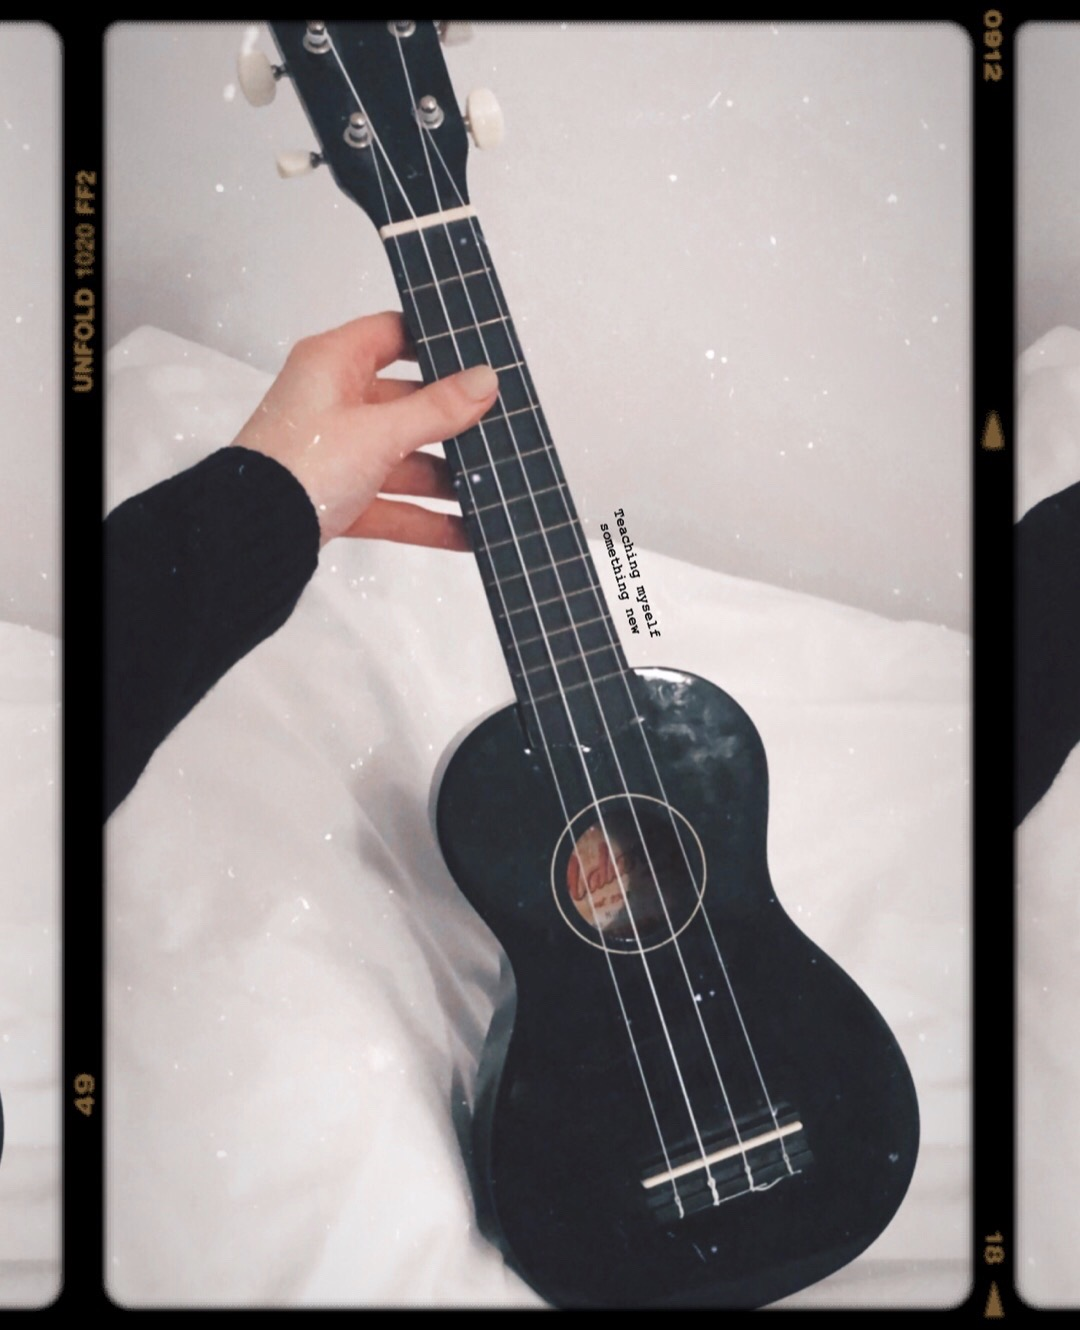 Life Lately #2: New Adventures and Hobbies (picture of ukulele)